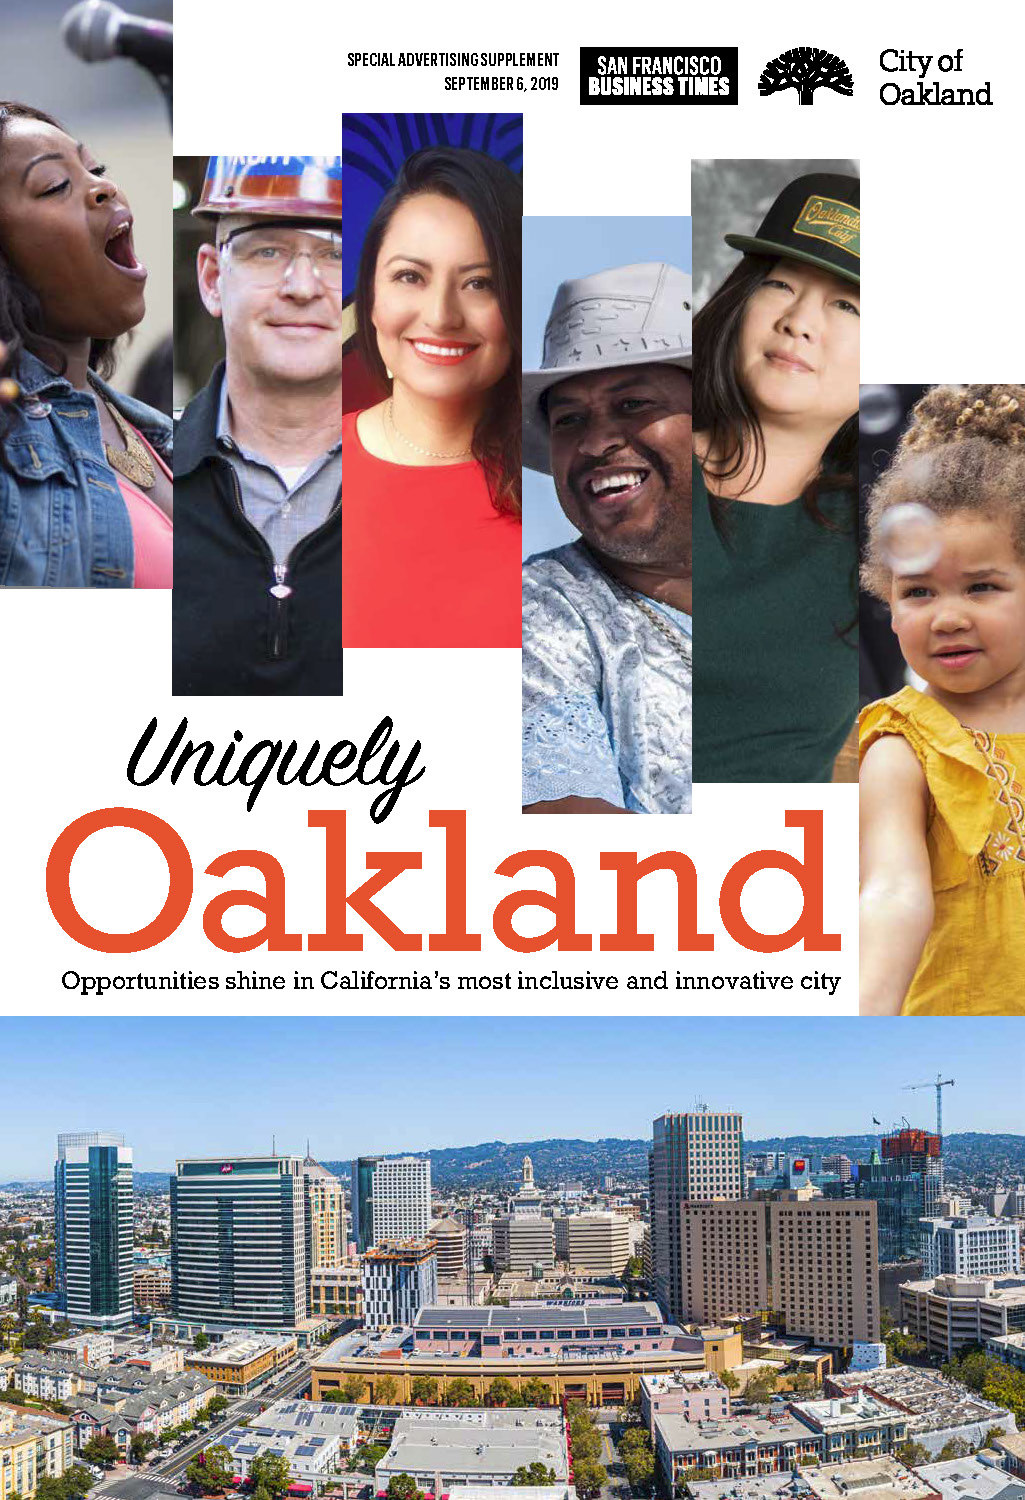 Uniquely Oakland insert in the San Francisco Business Times Image